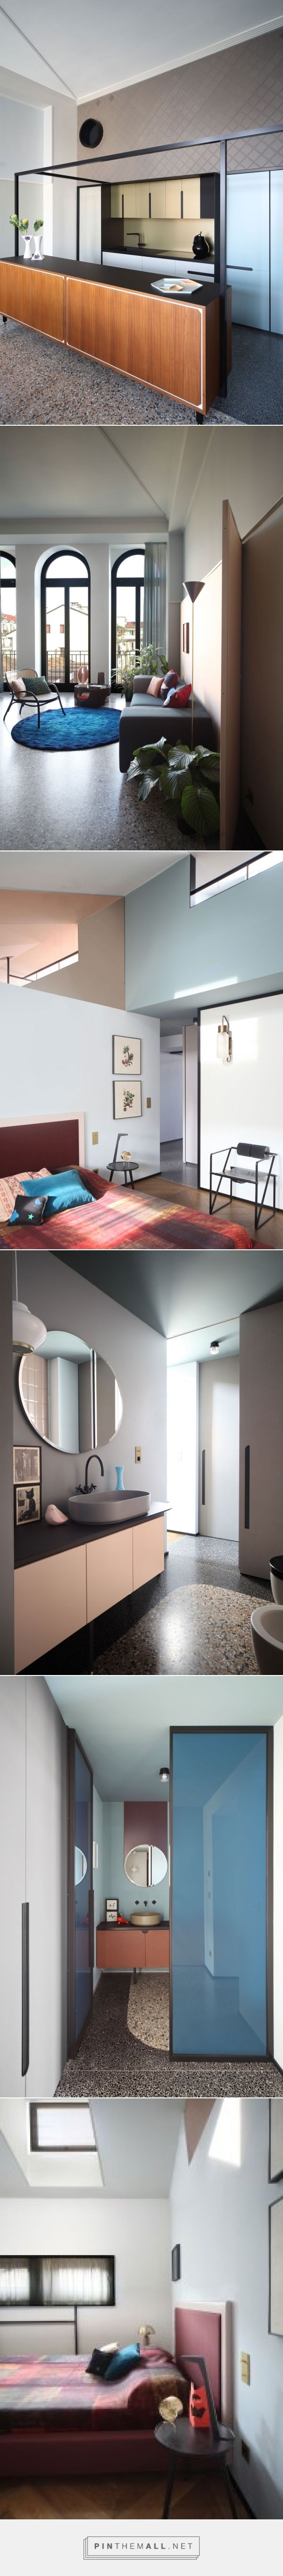 'History Repeating' Apartment in Turin, Italy by Marcante-Testa